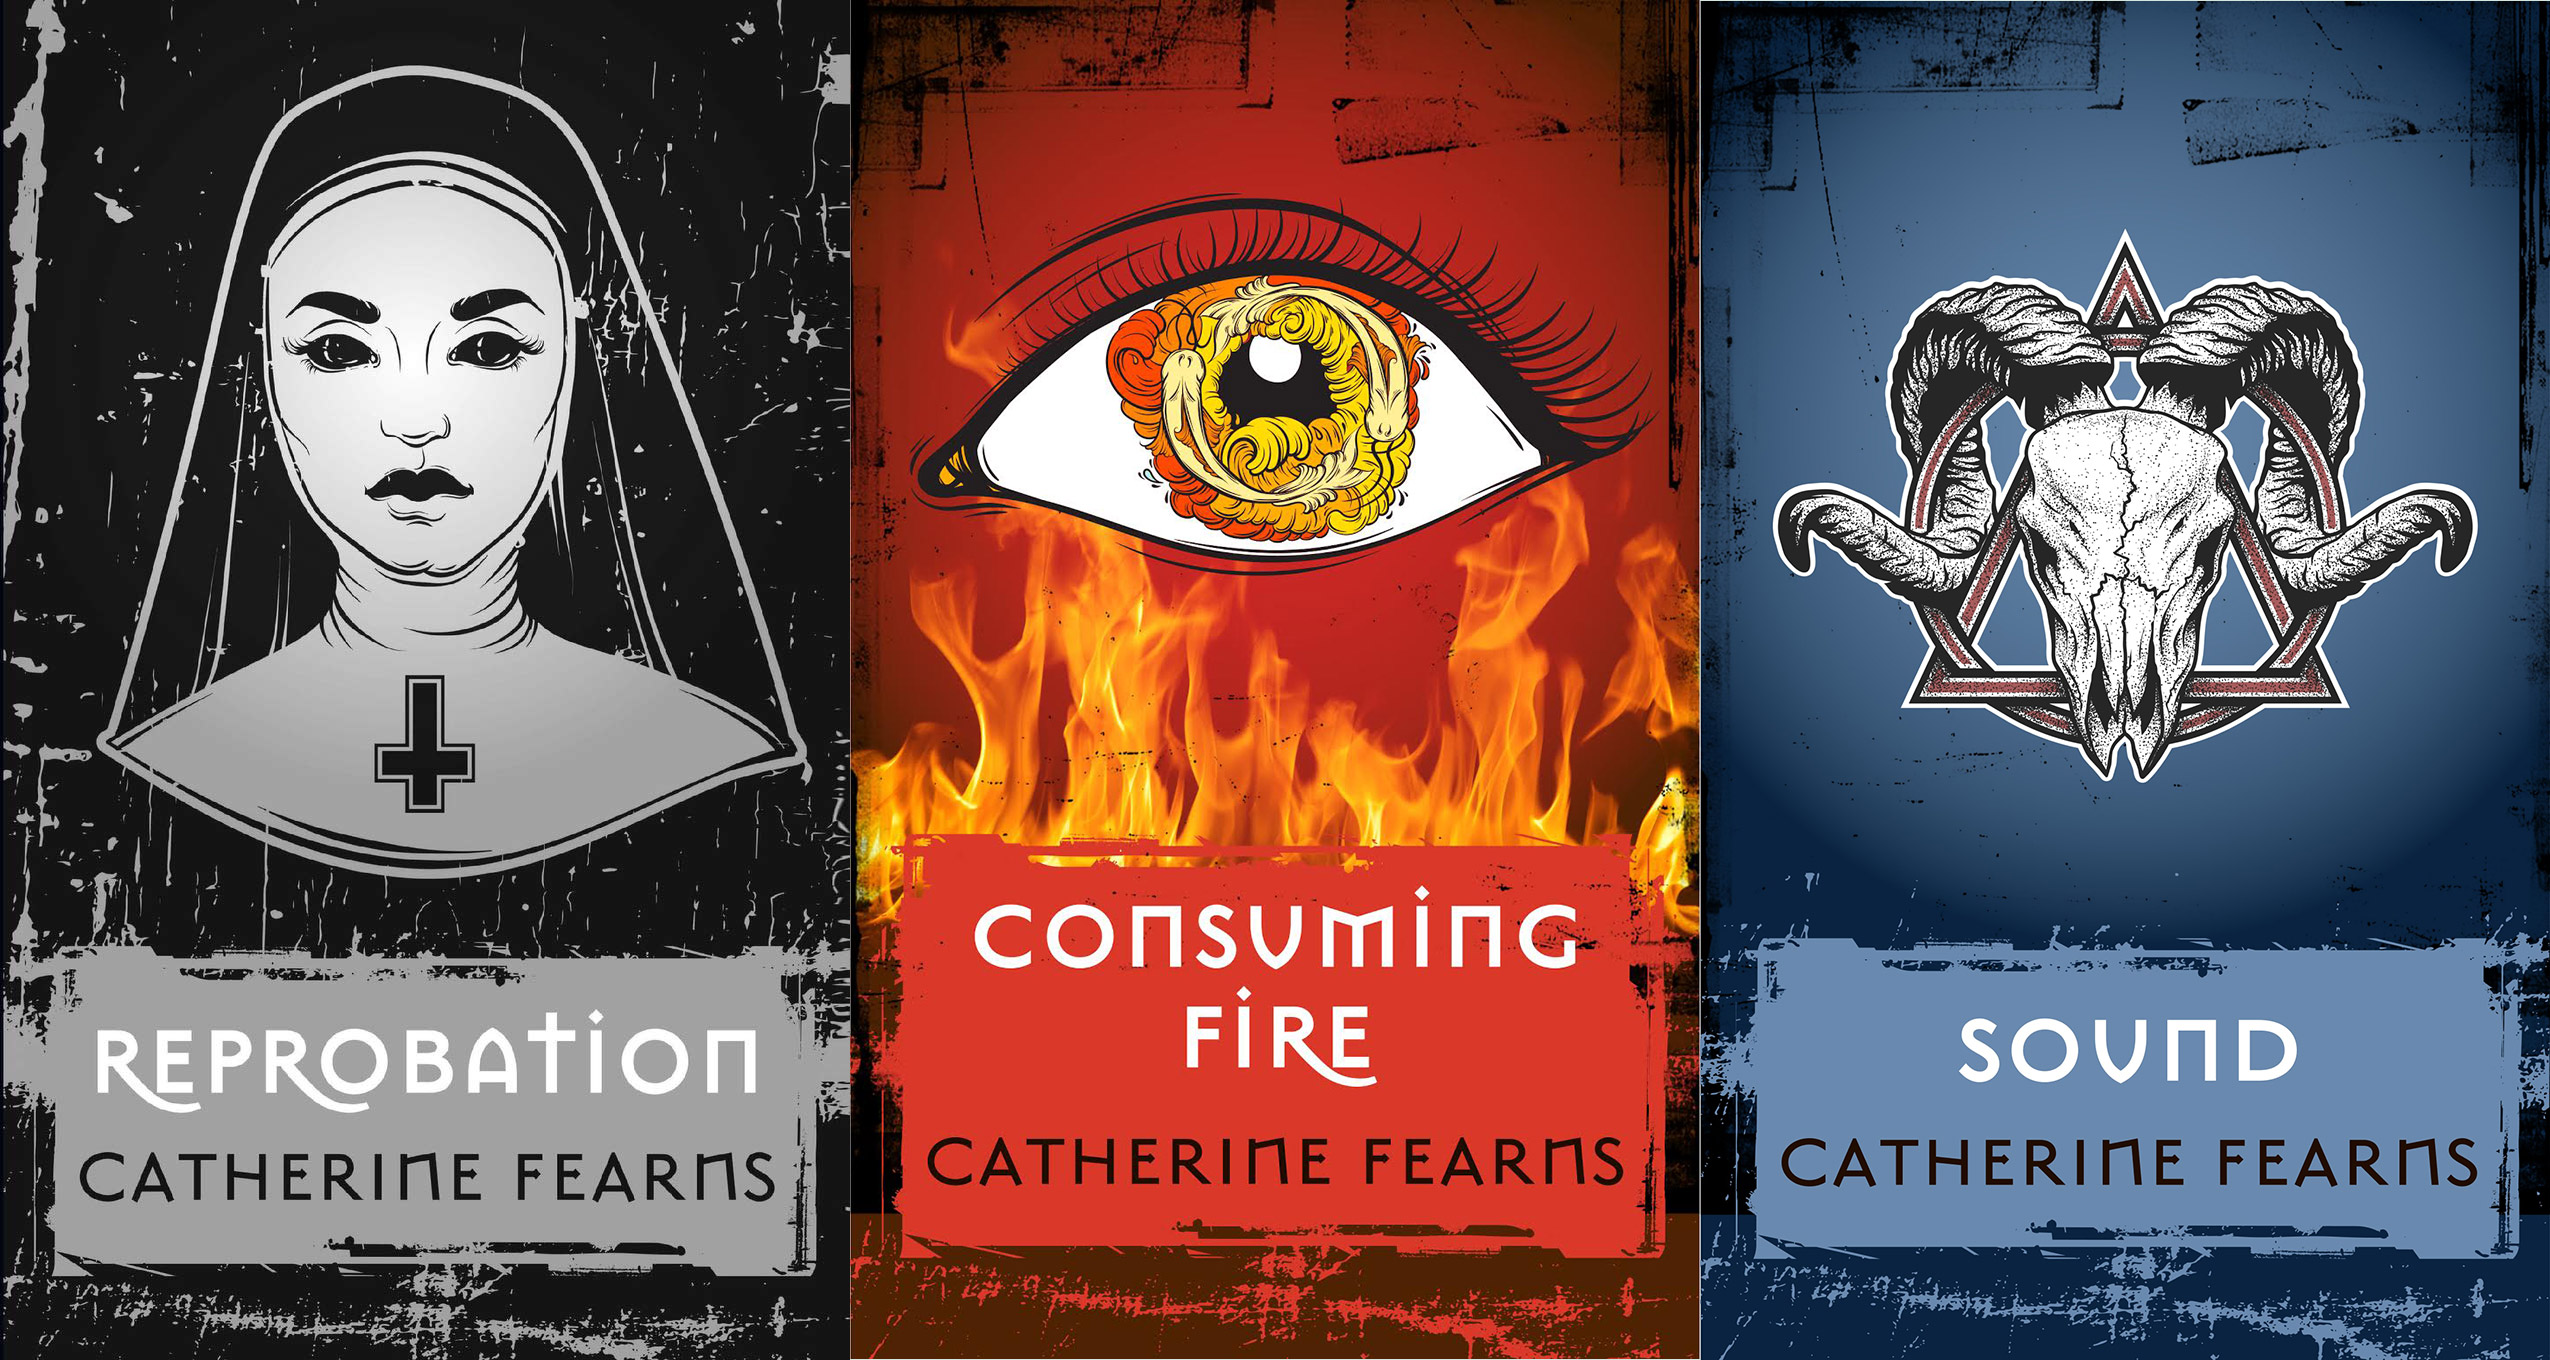 « Reprobation », « Consuming Fire » et « Sound », de Catherine Fearns